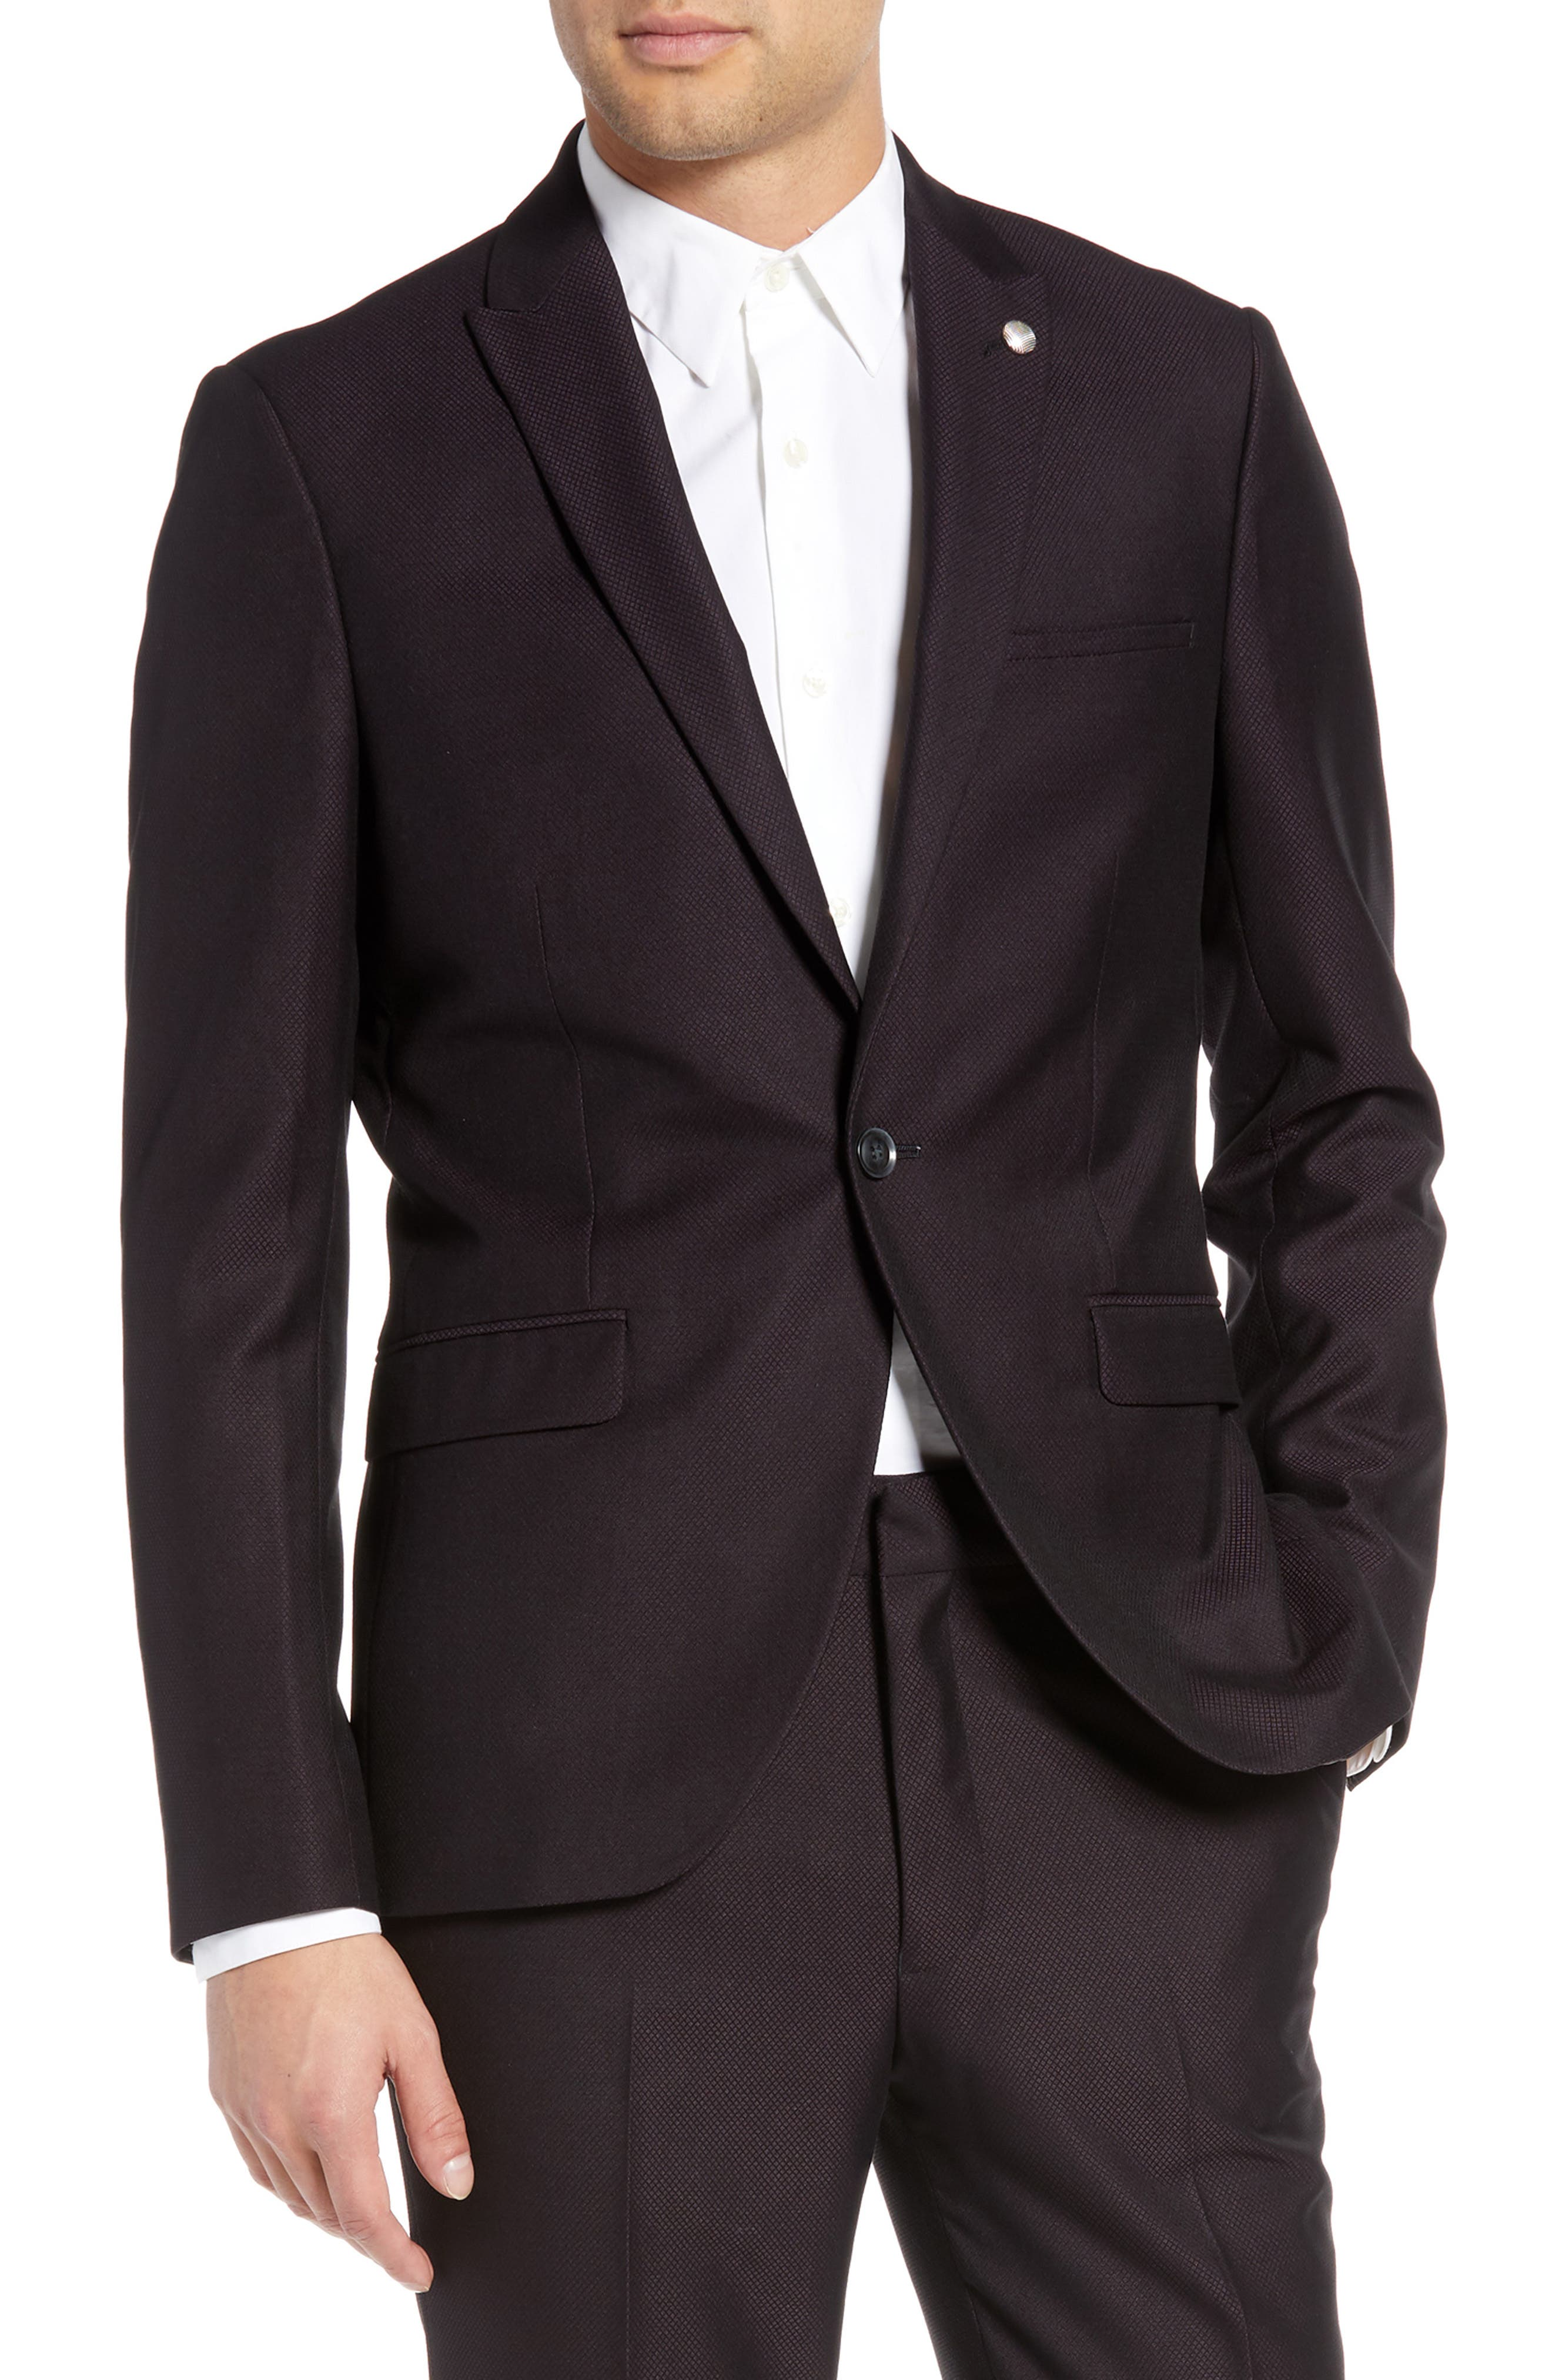 TOPMAN,                             Bicester Skinny Fit Suit Jacket,                             Main thumbnail 1, color,                             930